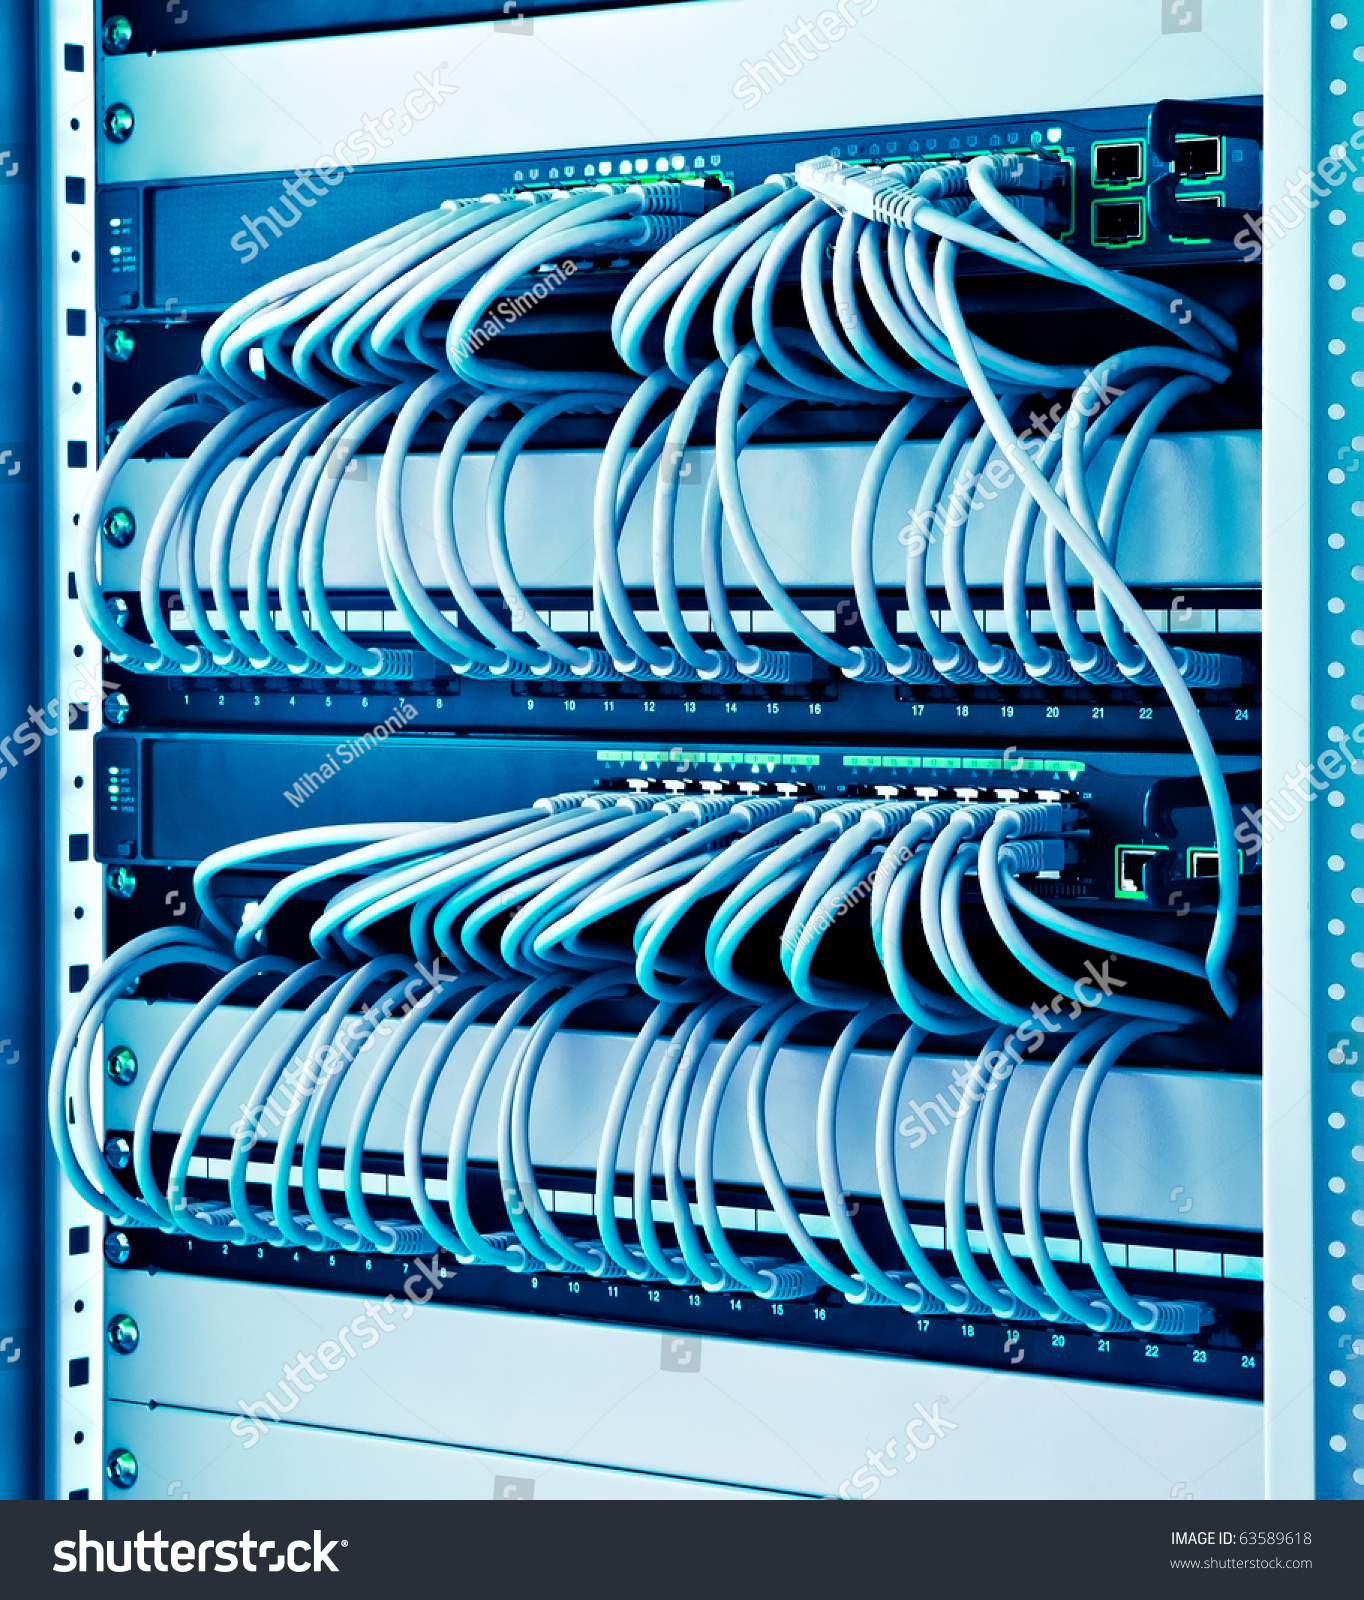 Network Rack Cables Switches Patch Stock Photo 63589618 - Shutterstock